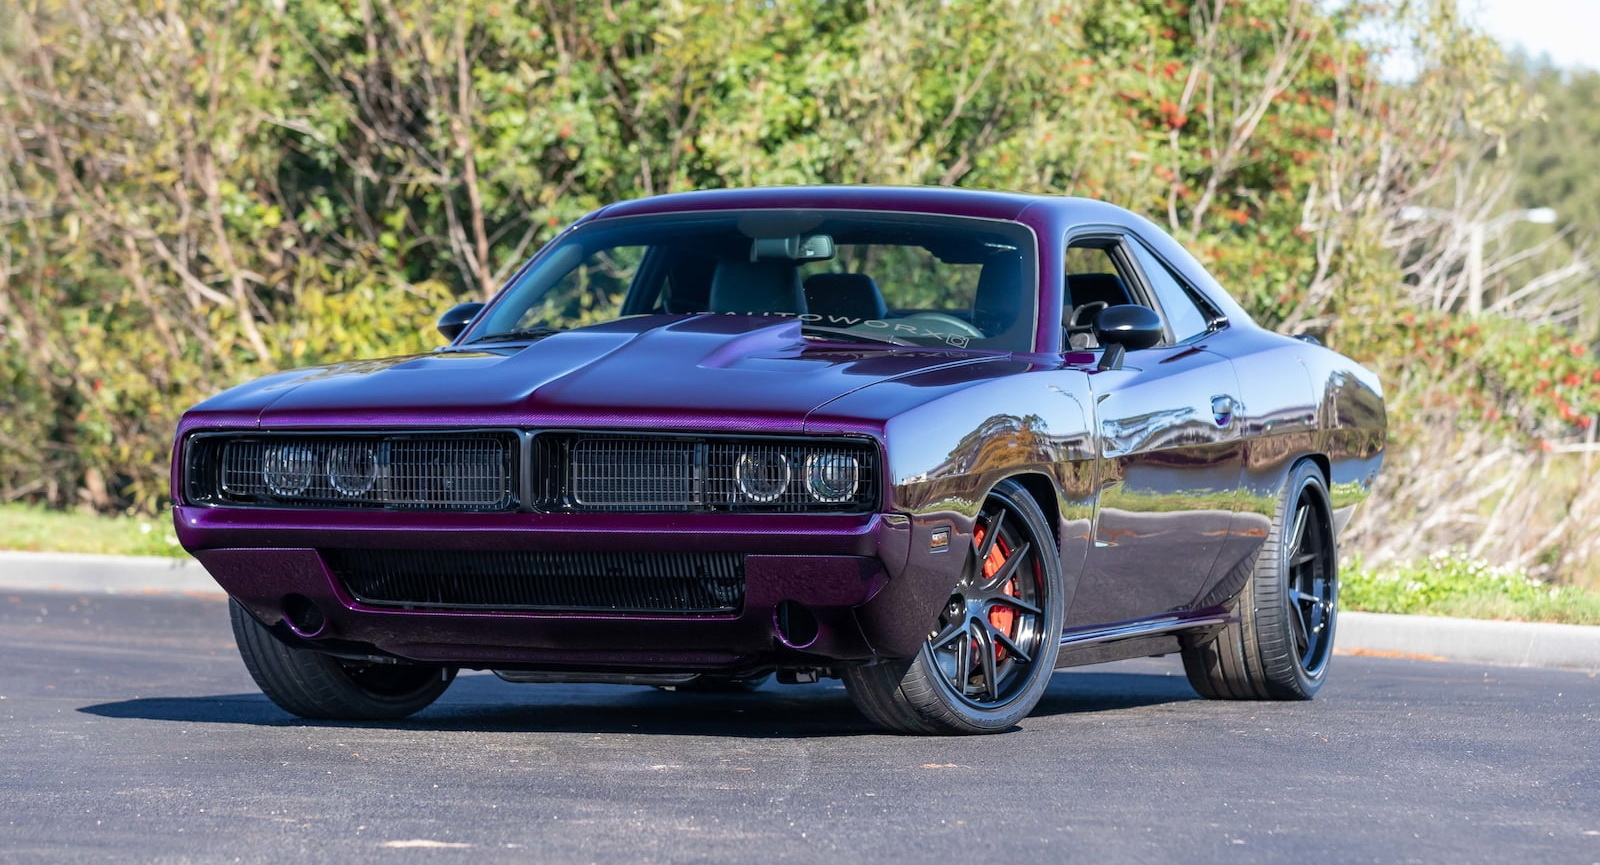 2019 Dodge Challenger Hellcat Wears Carbon 1969 Charger